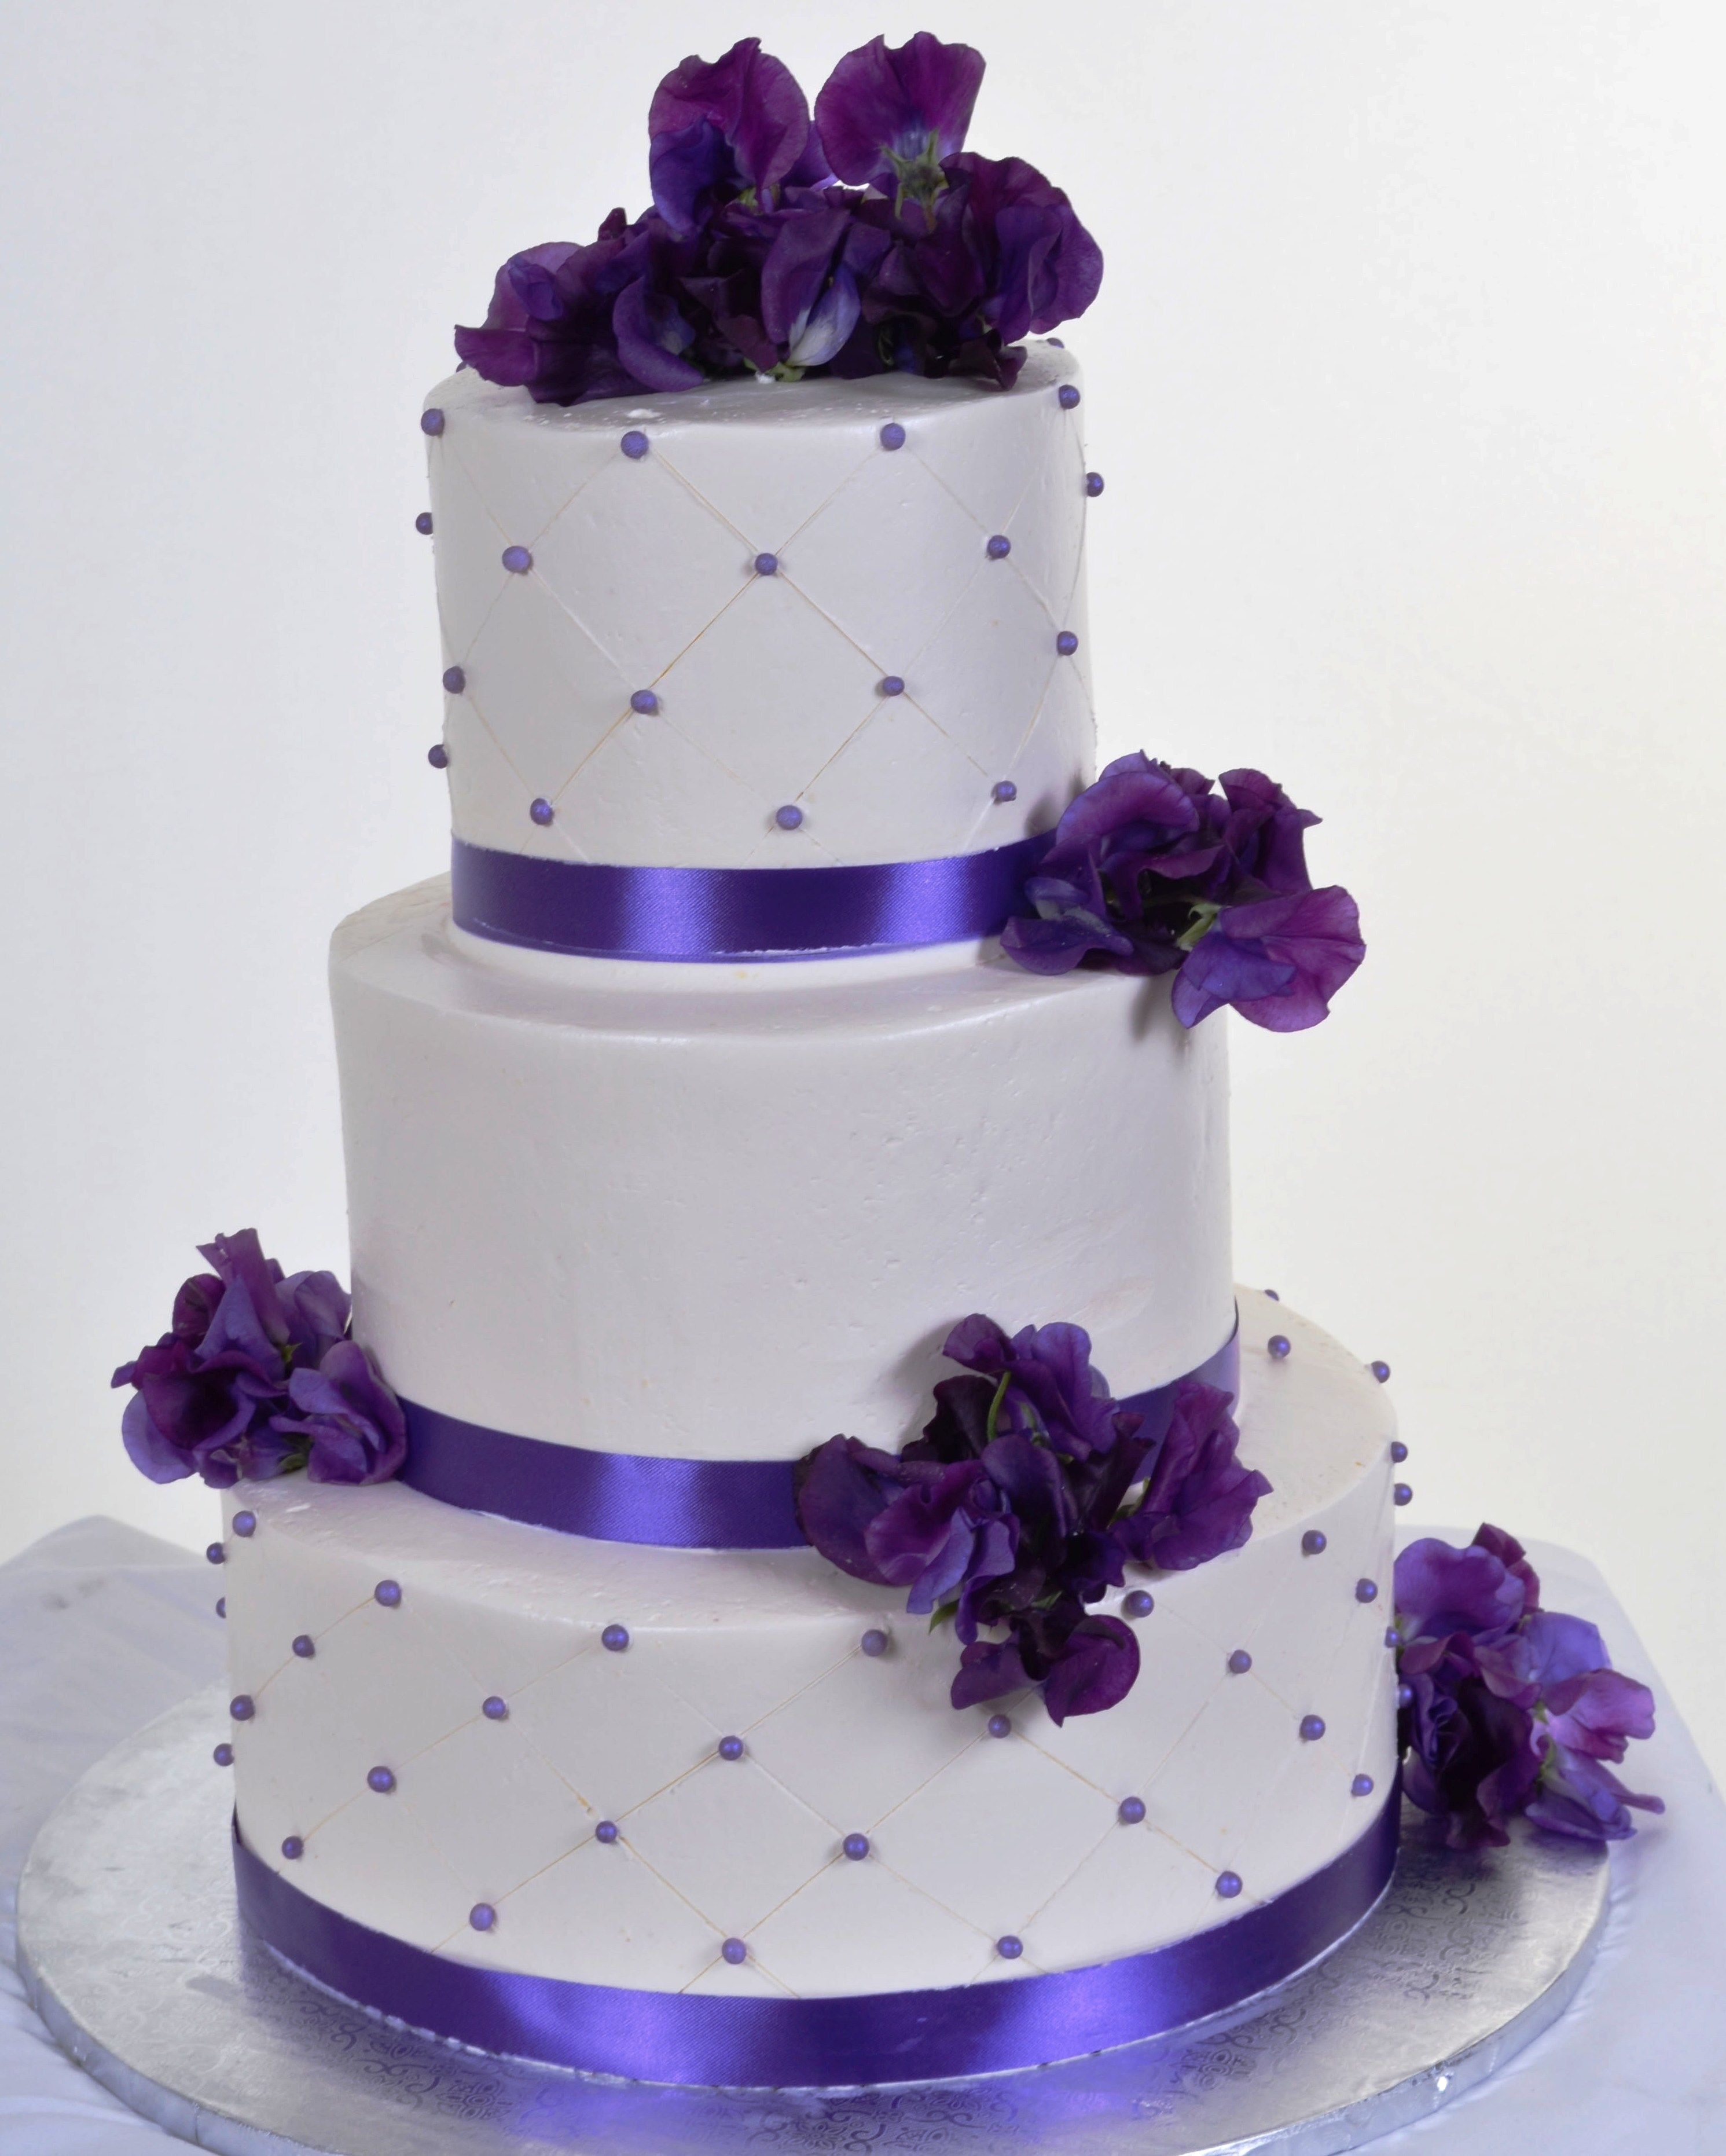 Purple Wedding Cakes There are two options the most